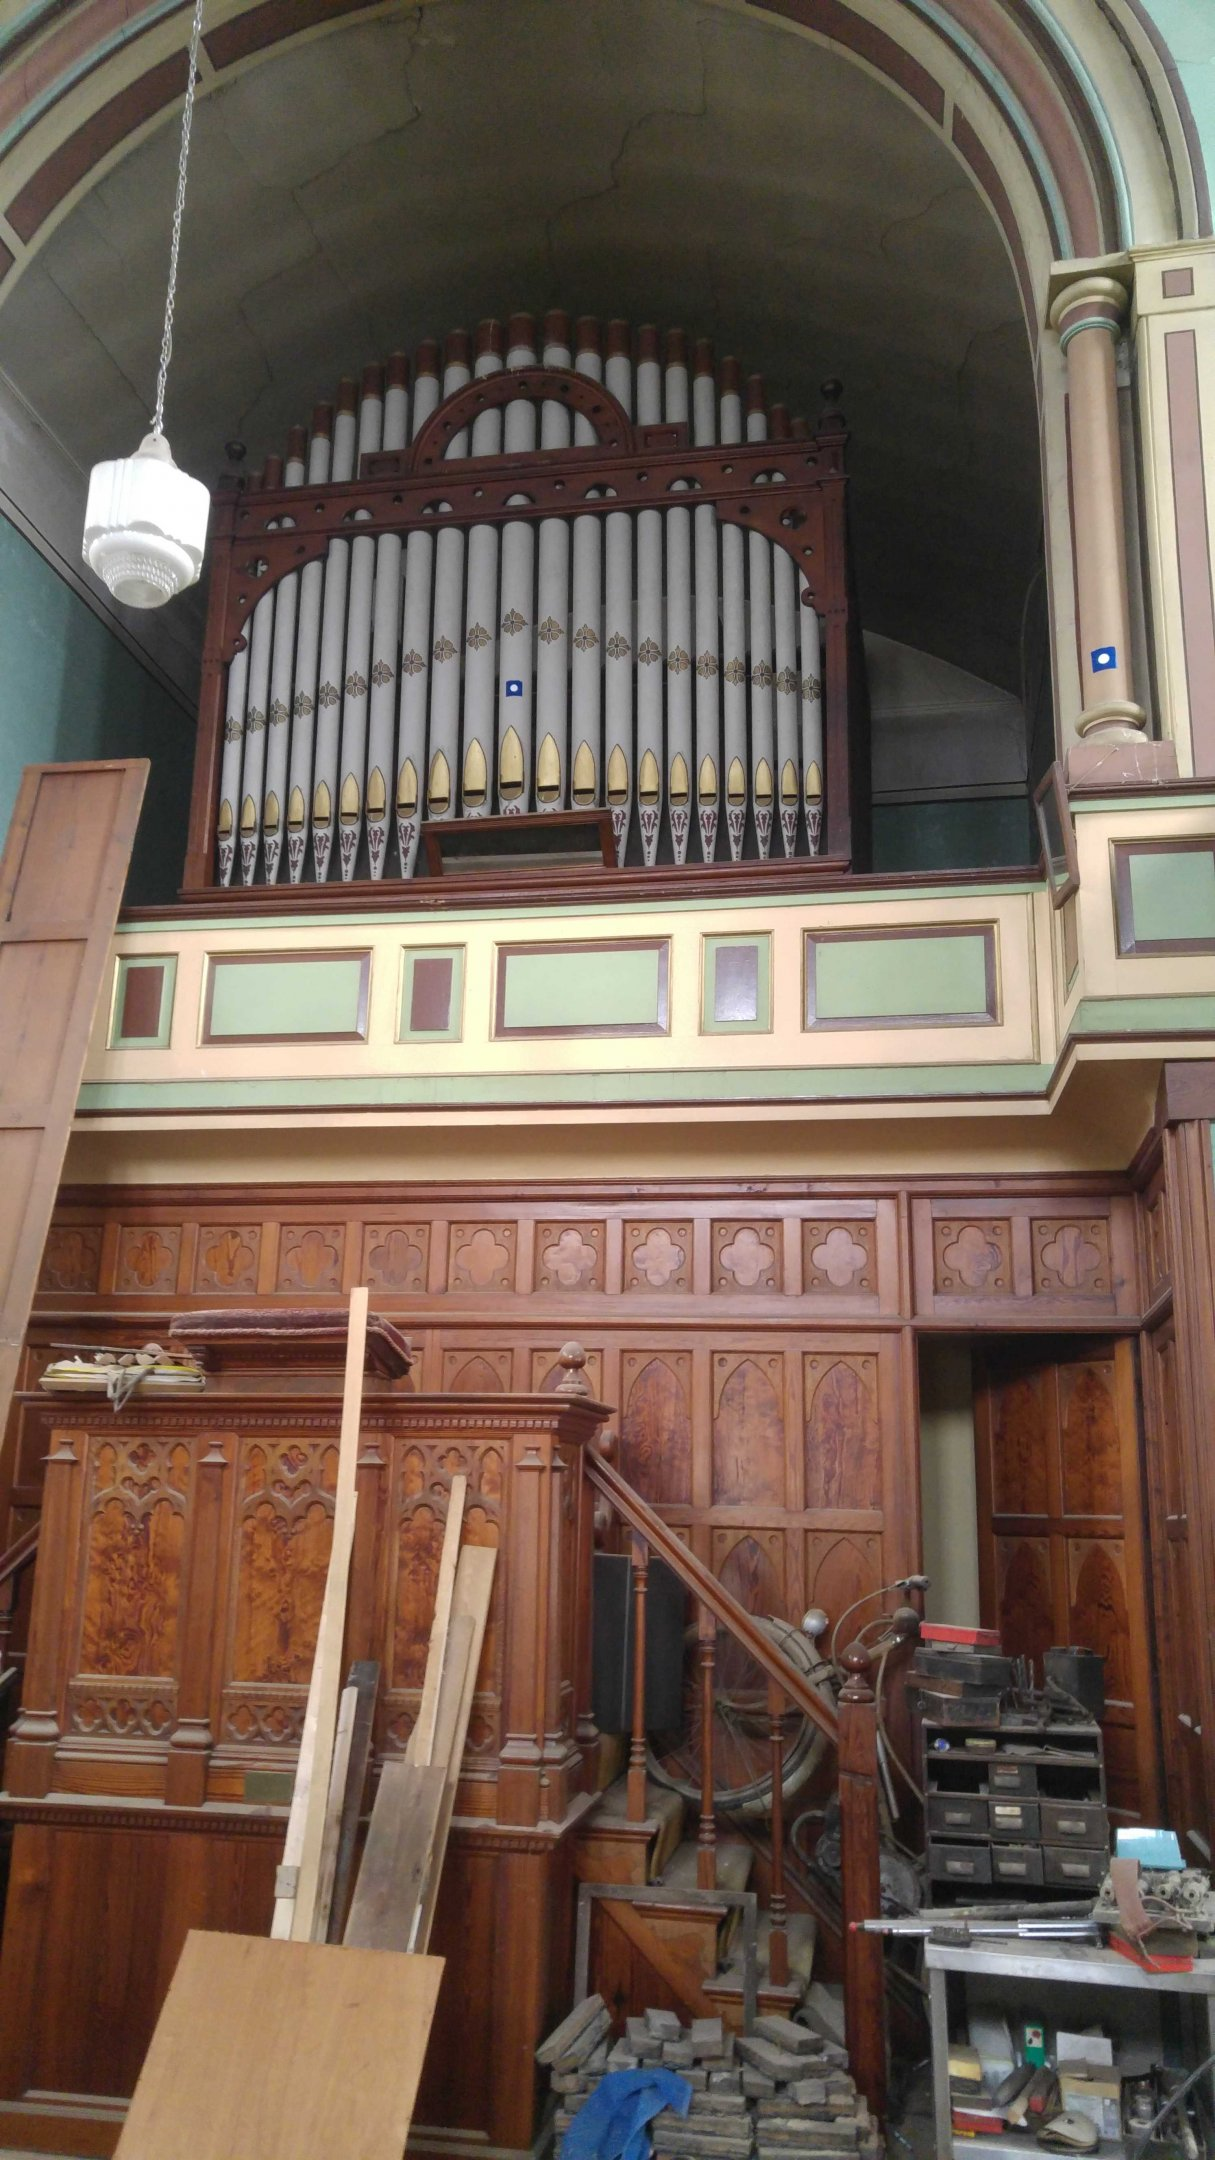 Organ and old bike.jpg